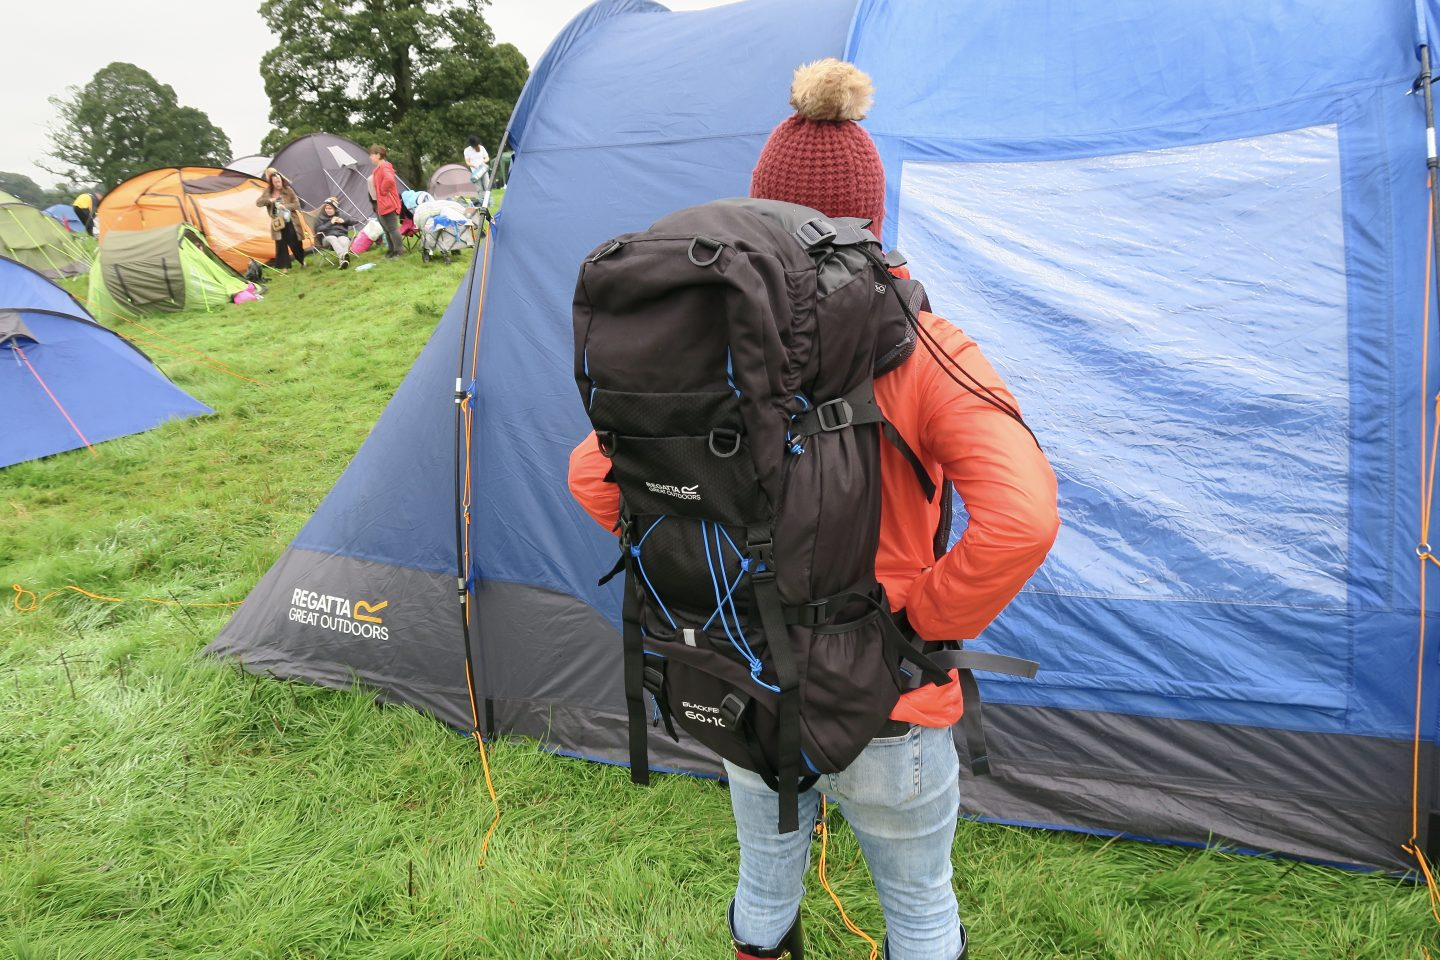 A woman wears a camping rucksack in front of her tent at a festival.